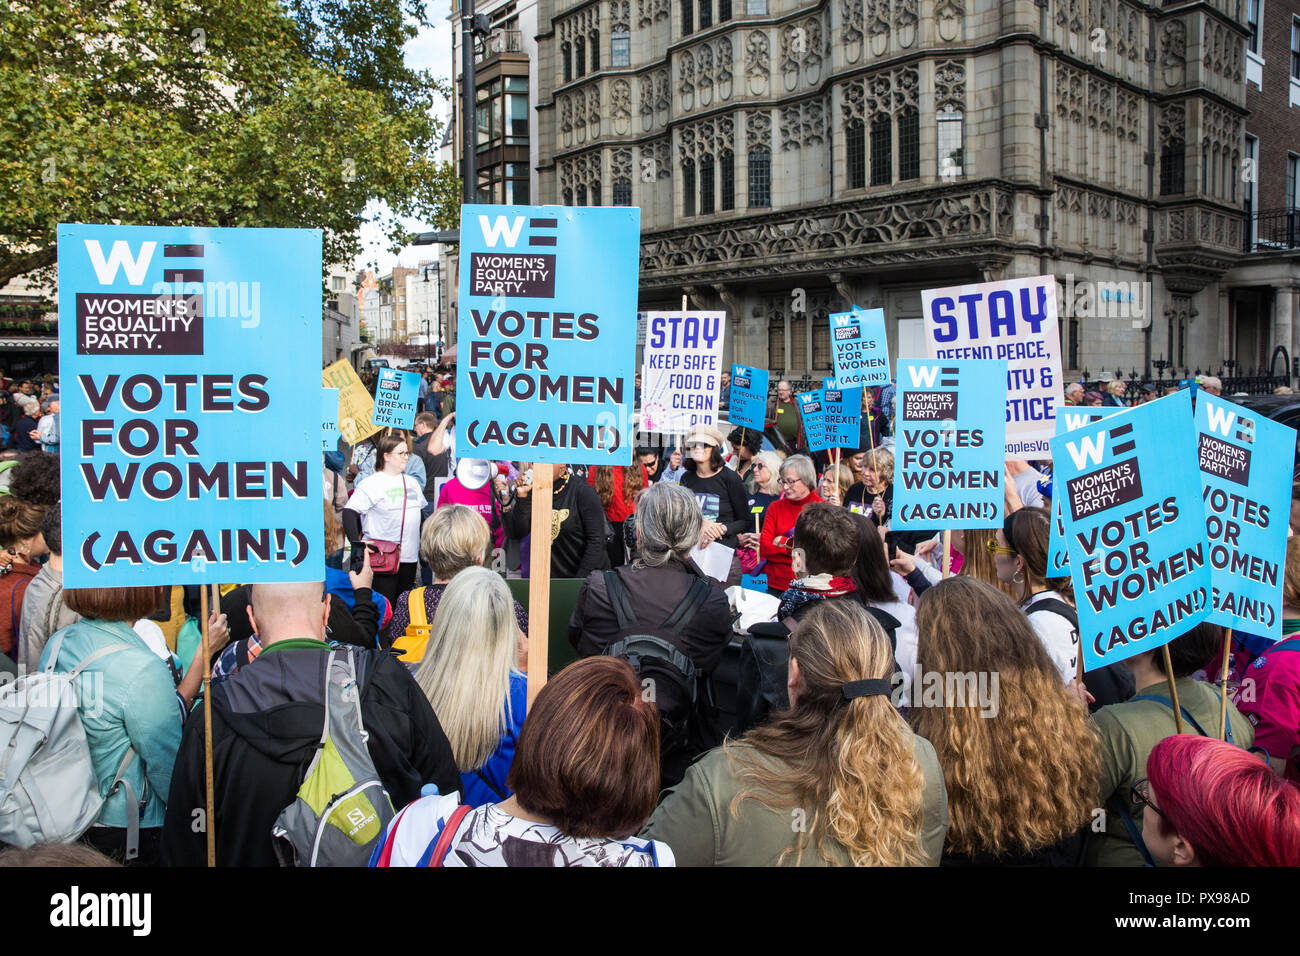 London, UK. 20th October, 2018. Supporters of the Women's Equality Party join hundreds of thousands of people taking part in the People's Vote March for the Future to demand a vote on the final Brexit deal. The People's Vote is a grassroots campaign supported by Open Britain, European Movement UK, Britain for Europe, Scientists for EU, Healthier In, Our Future Our Choice, For Our Future's Sake, Wales For Europe and InFacts. Credit: Mark Kerrison/Alamy Live News - Stock Image